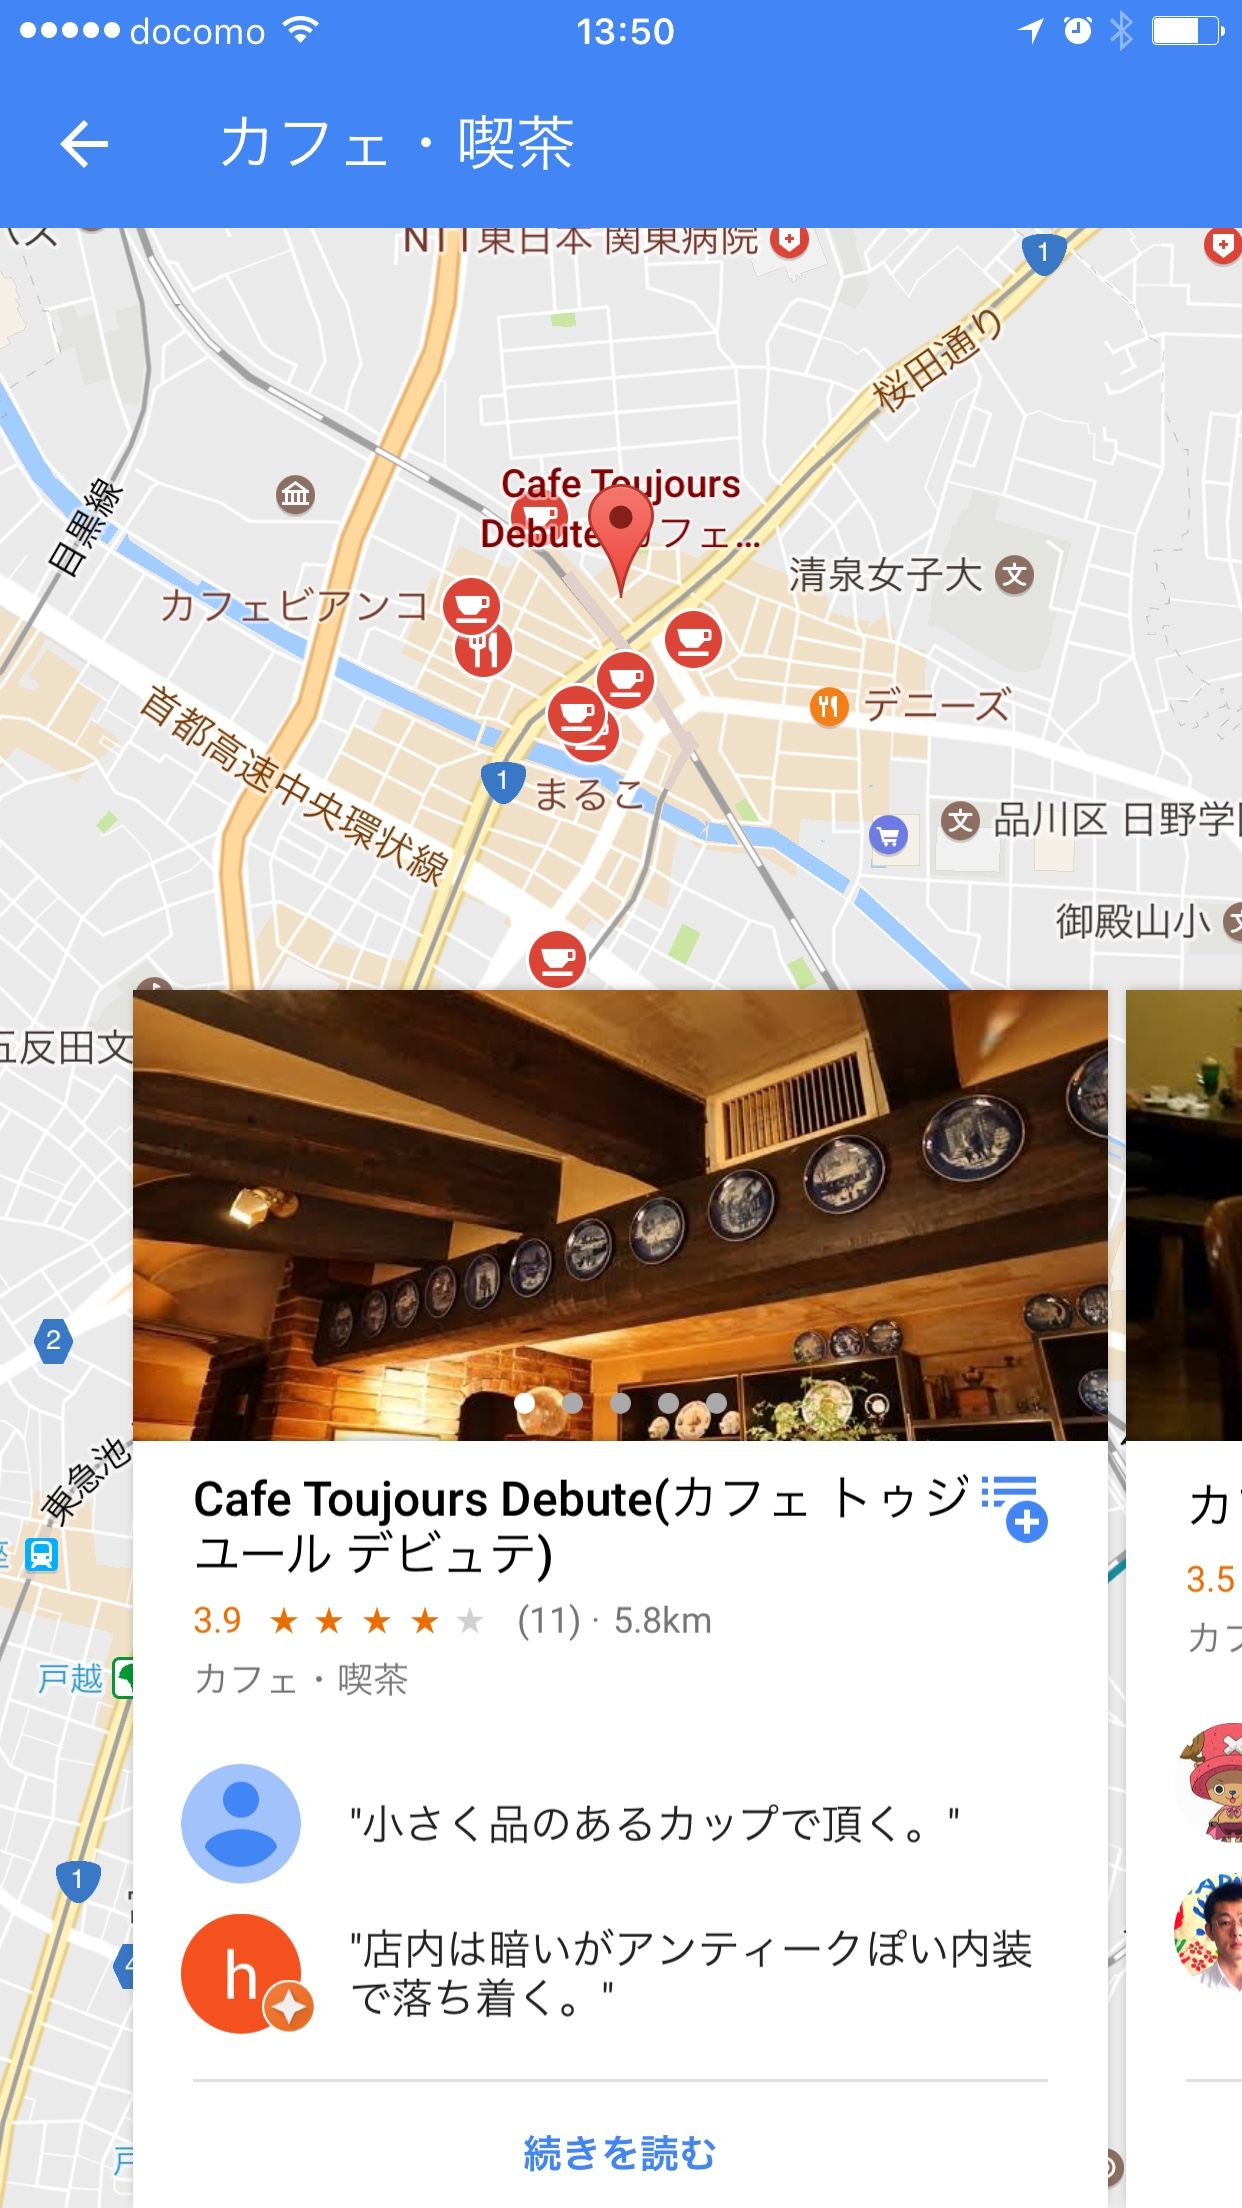 Now you have cafe search results with red color pin-like icons and a scroll list at the bottom